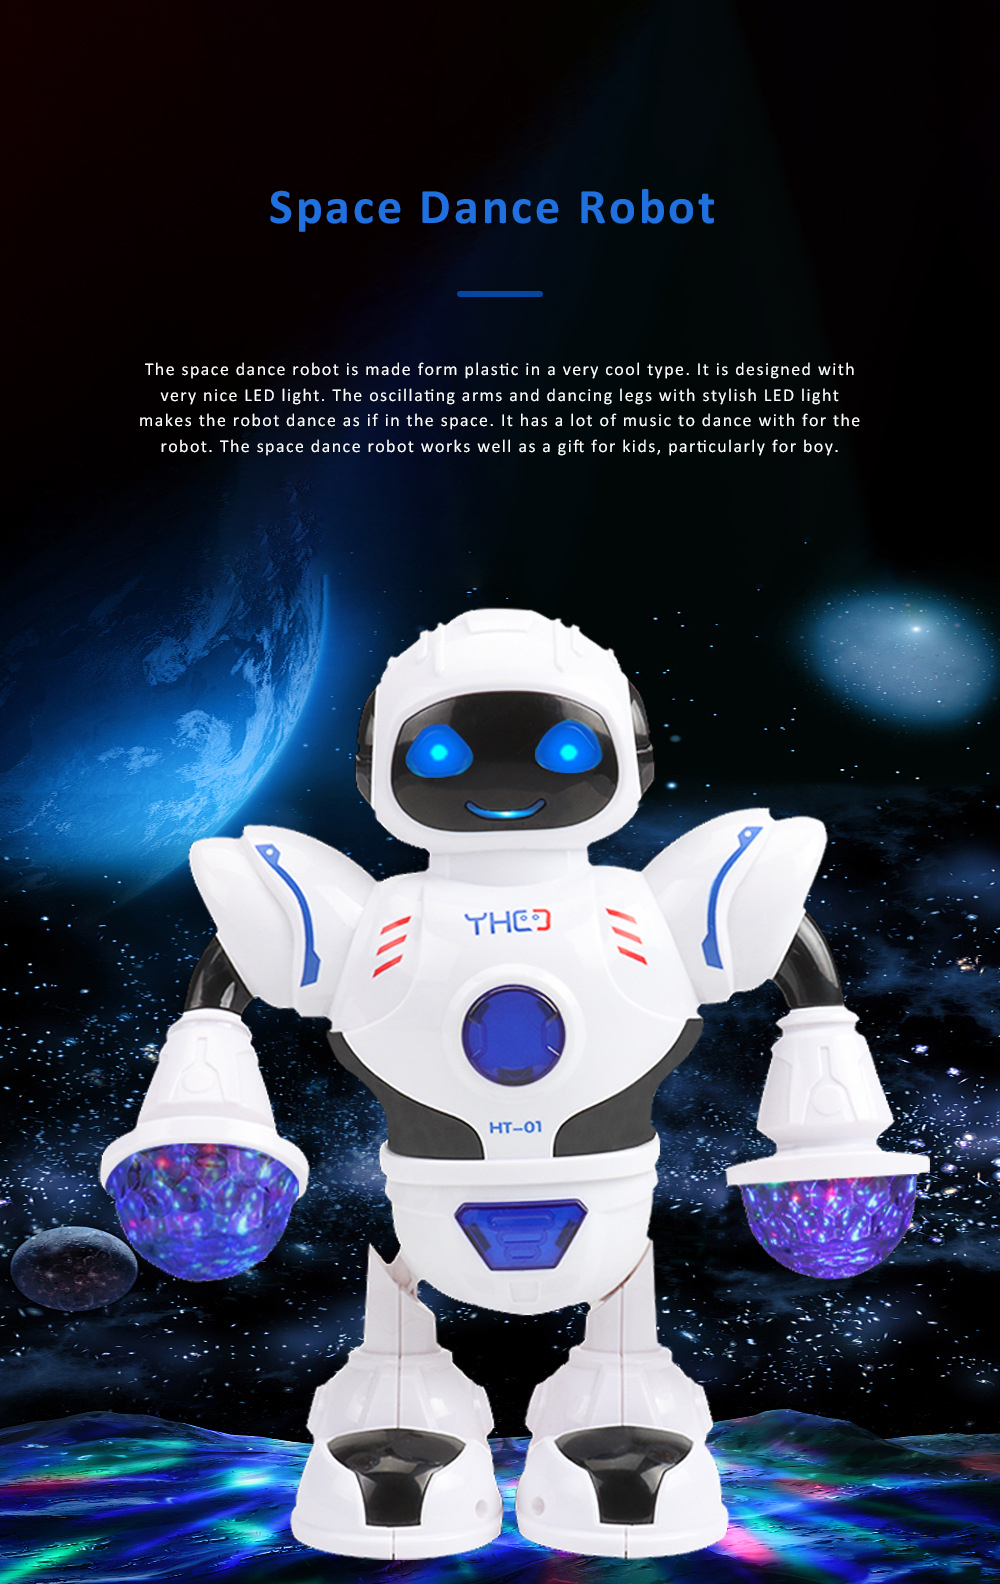 Space Dance Robot for Kids' Gift With LED Light Dancing Robot Kids' Electronic Toy Battery-operated Dance Robot 0